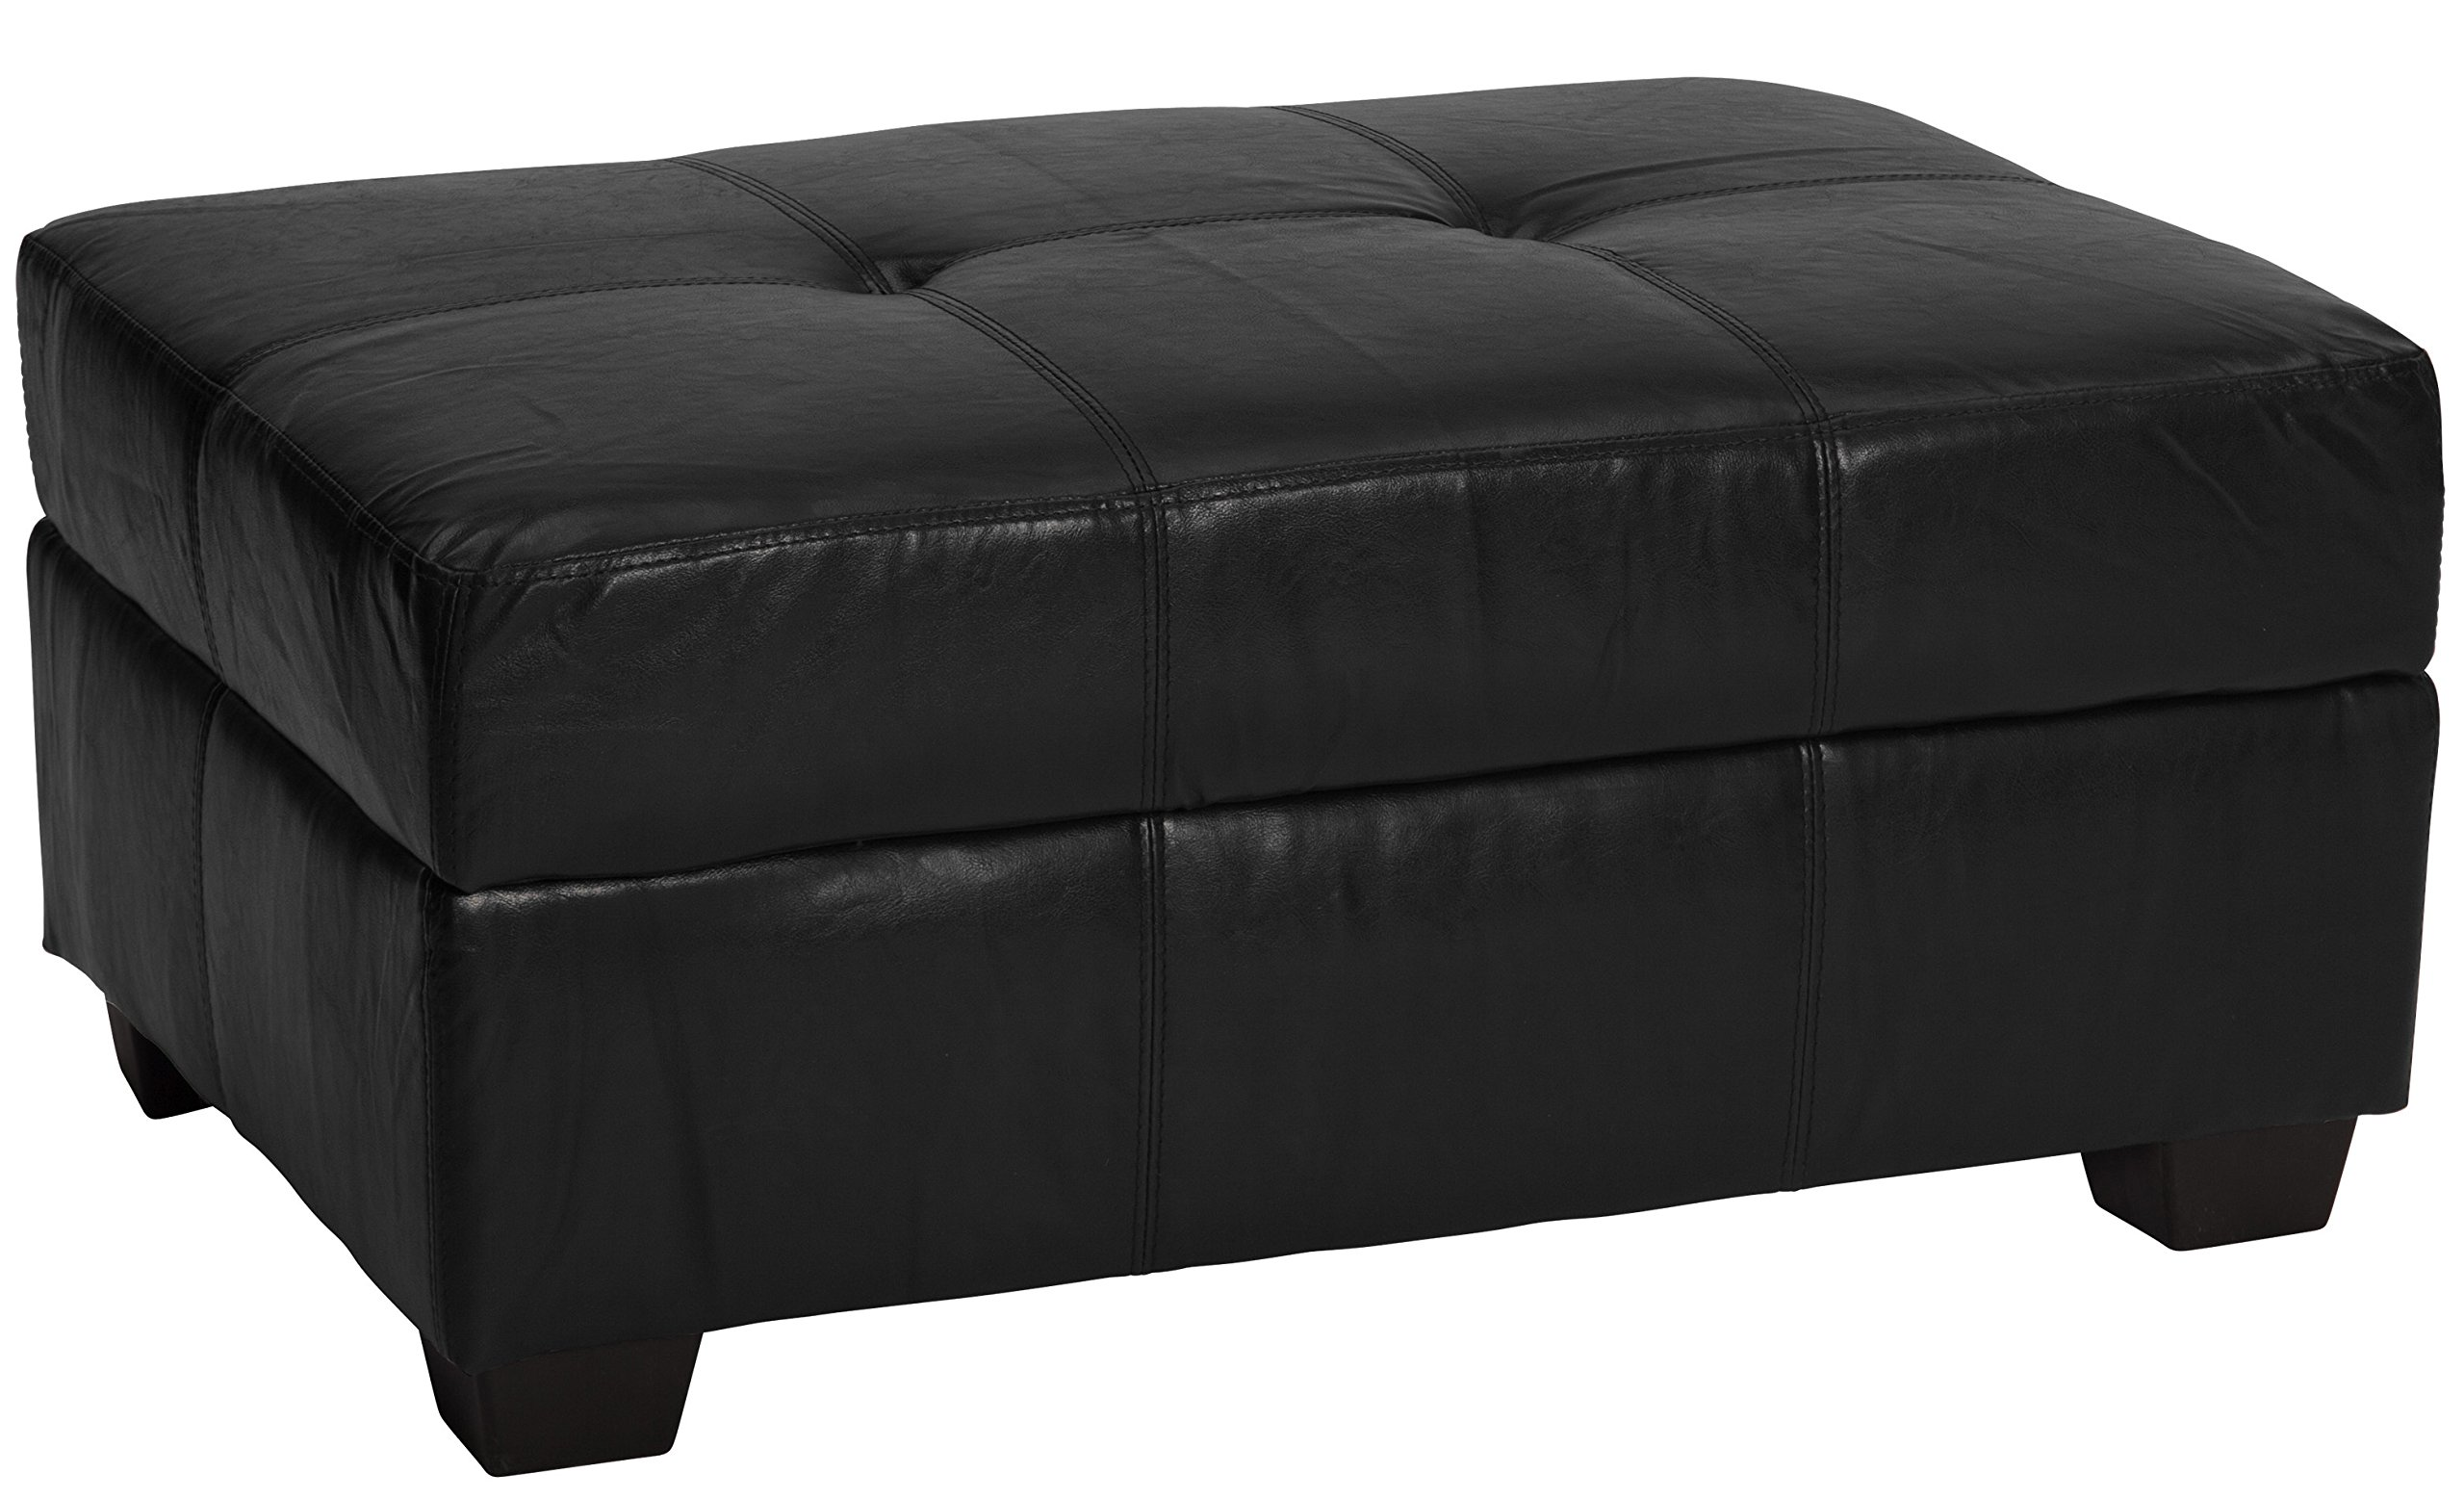 Epic Furnishings Microfiber Upholstered 36 By 24 By 18 Inch Storage Ottoman Bench Suede